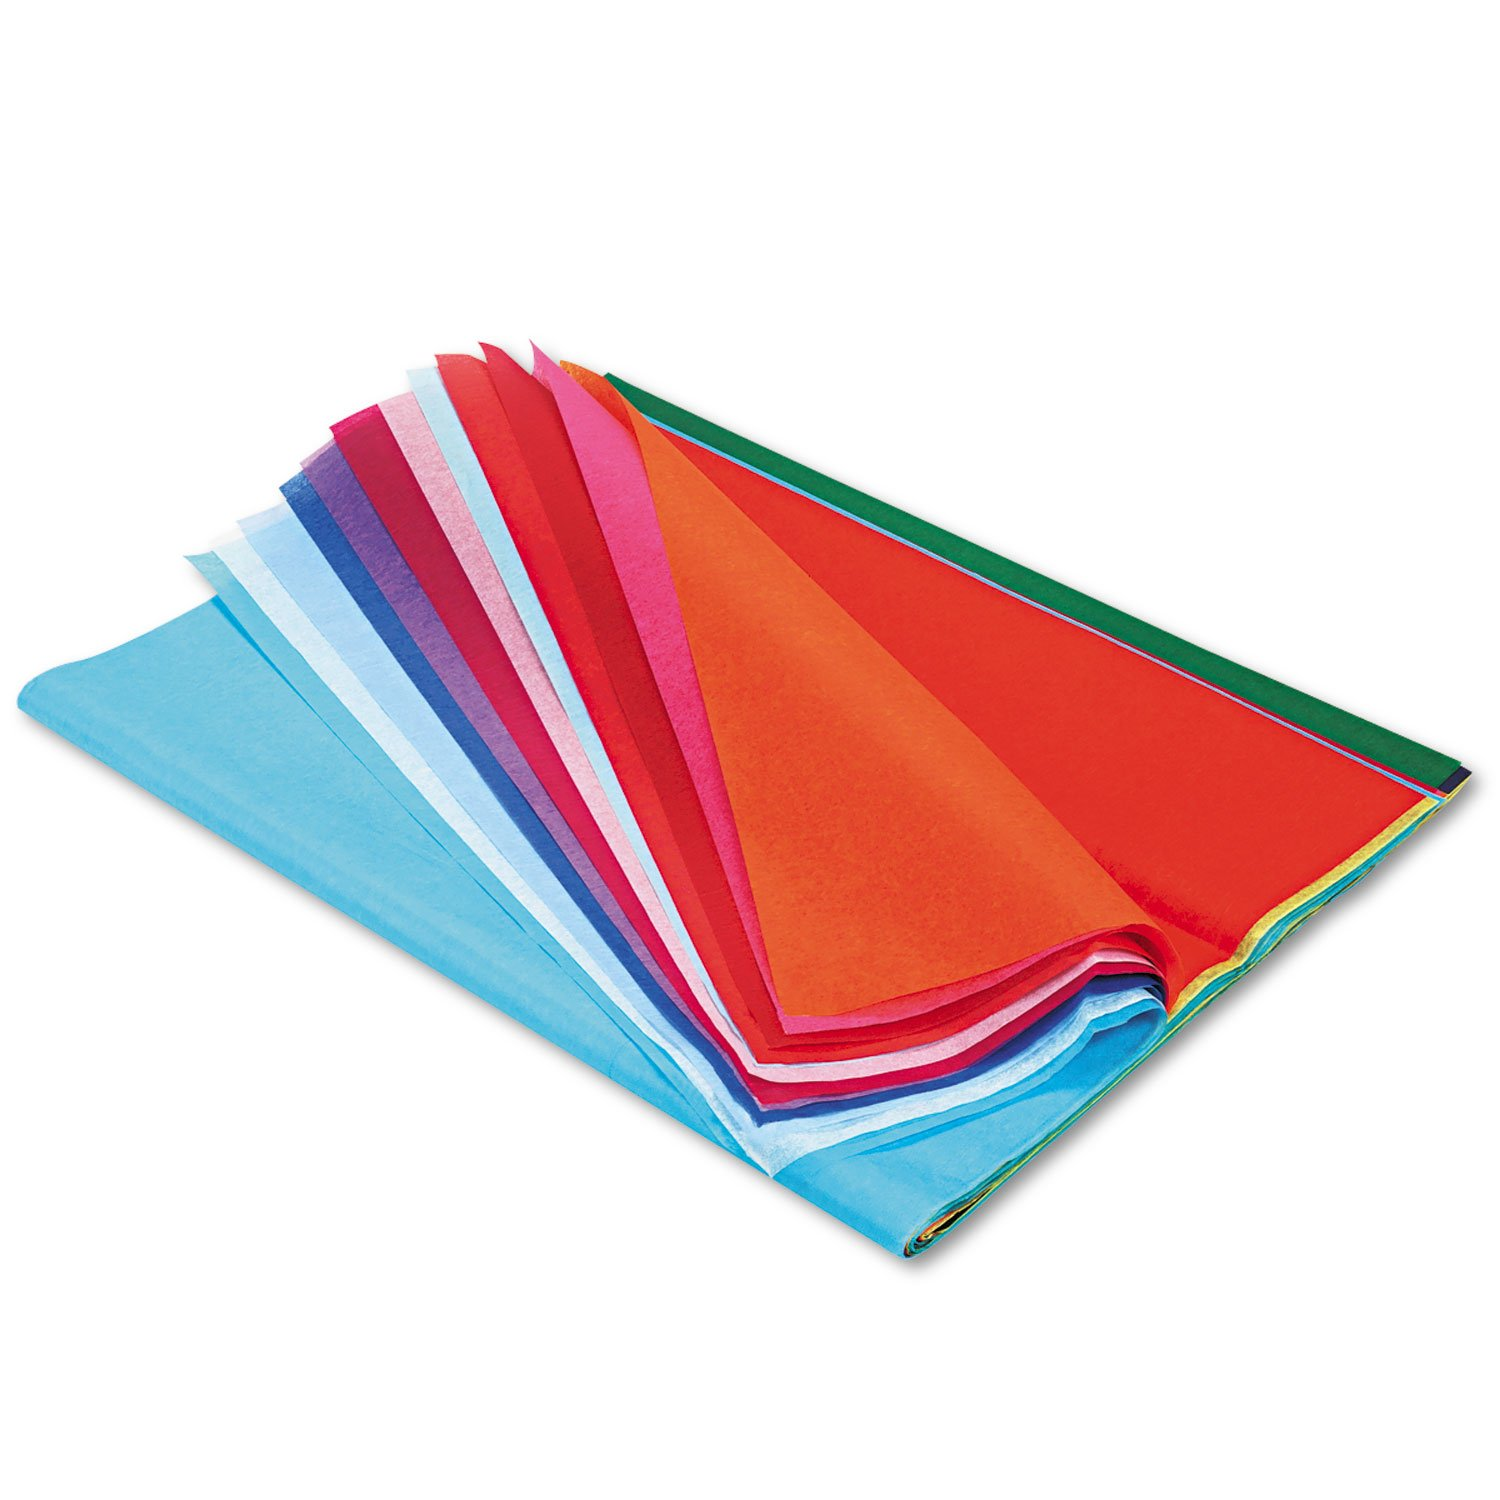 Spectra Art Tissue, 20 x 30, 20 Assorted Colors, 20 Sheets/Pack Pacon Corporation Pacon 58506